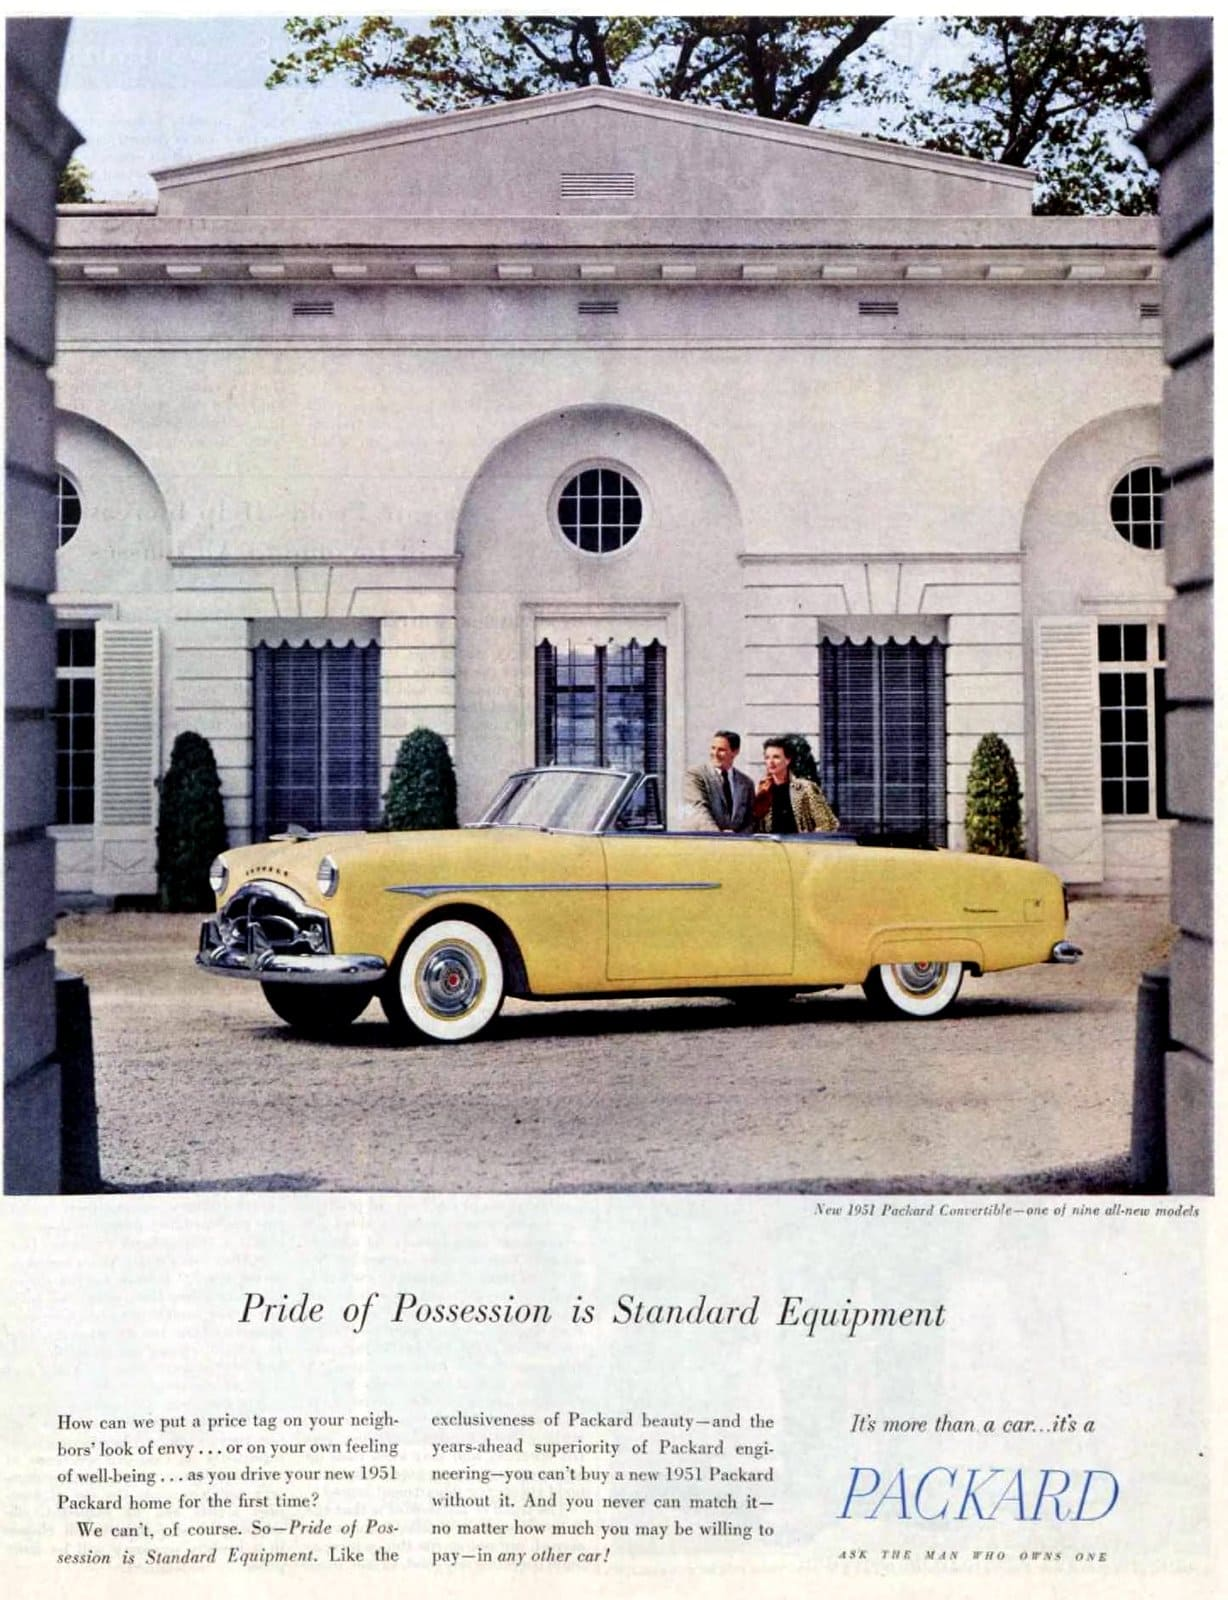 Vintage 1951 Packard Patrician 400 car in yellow